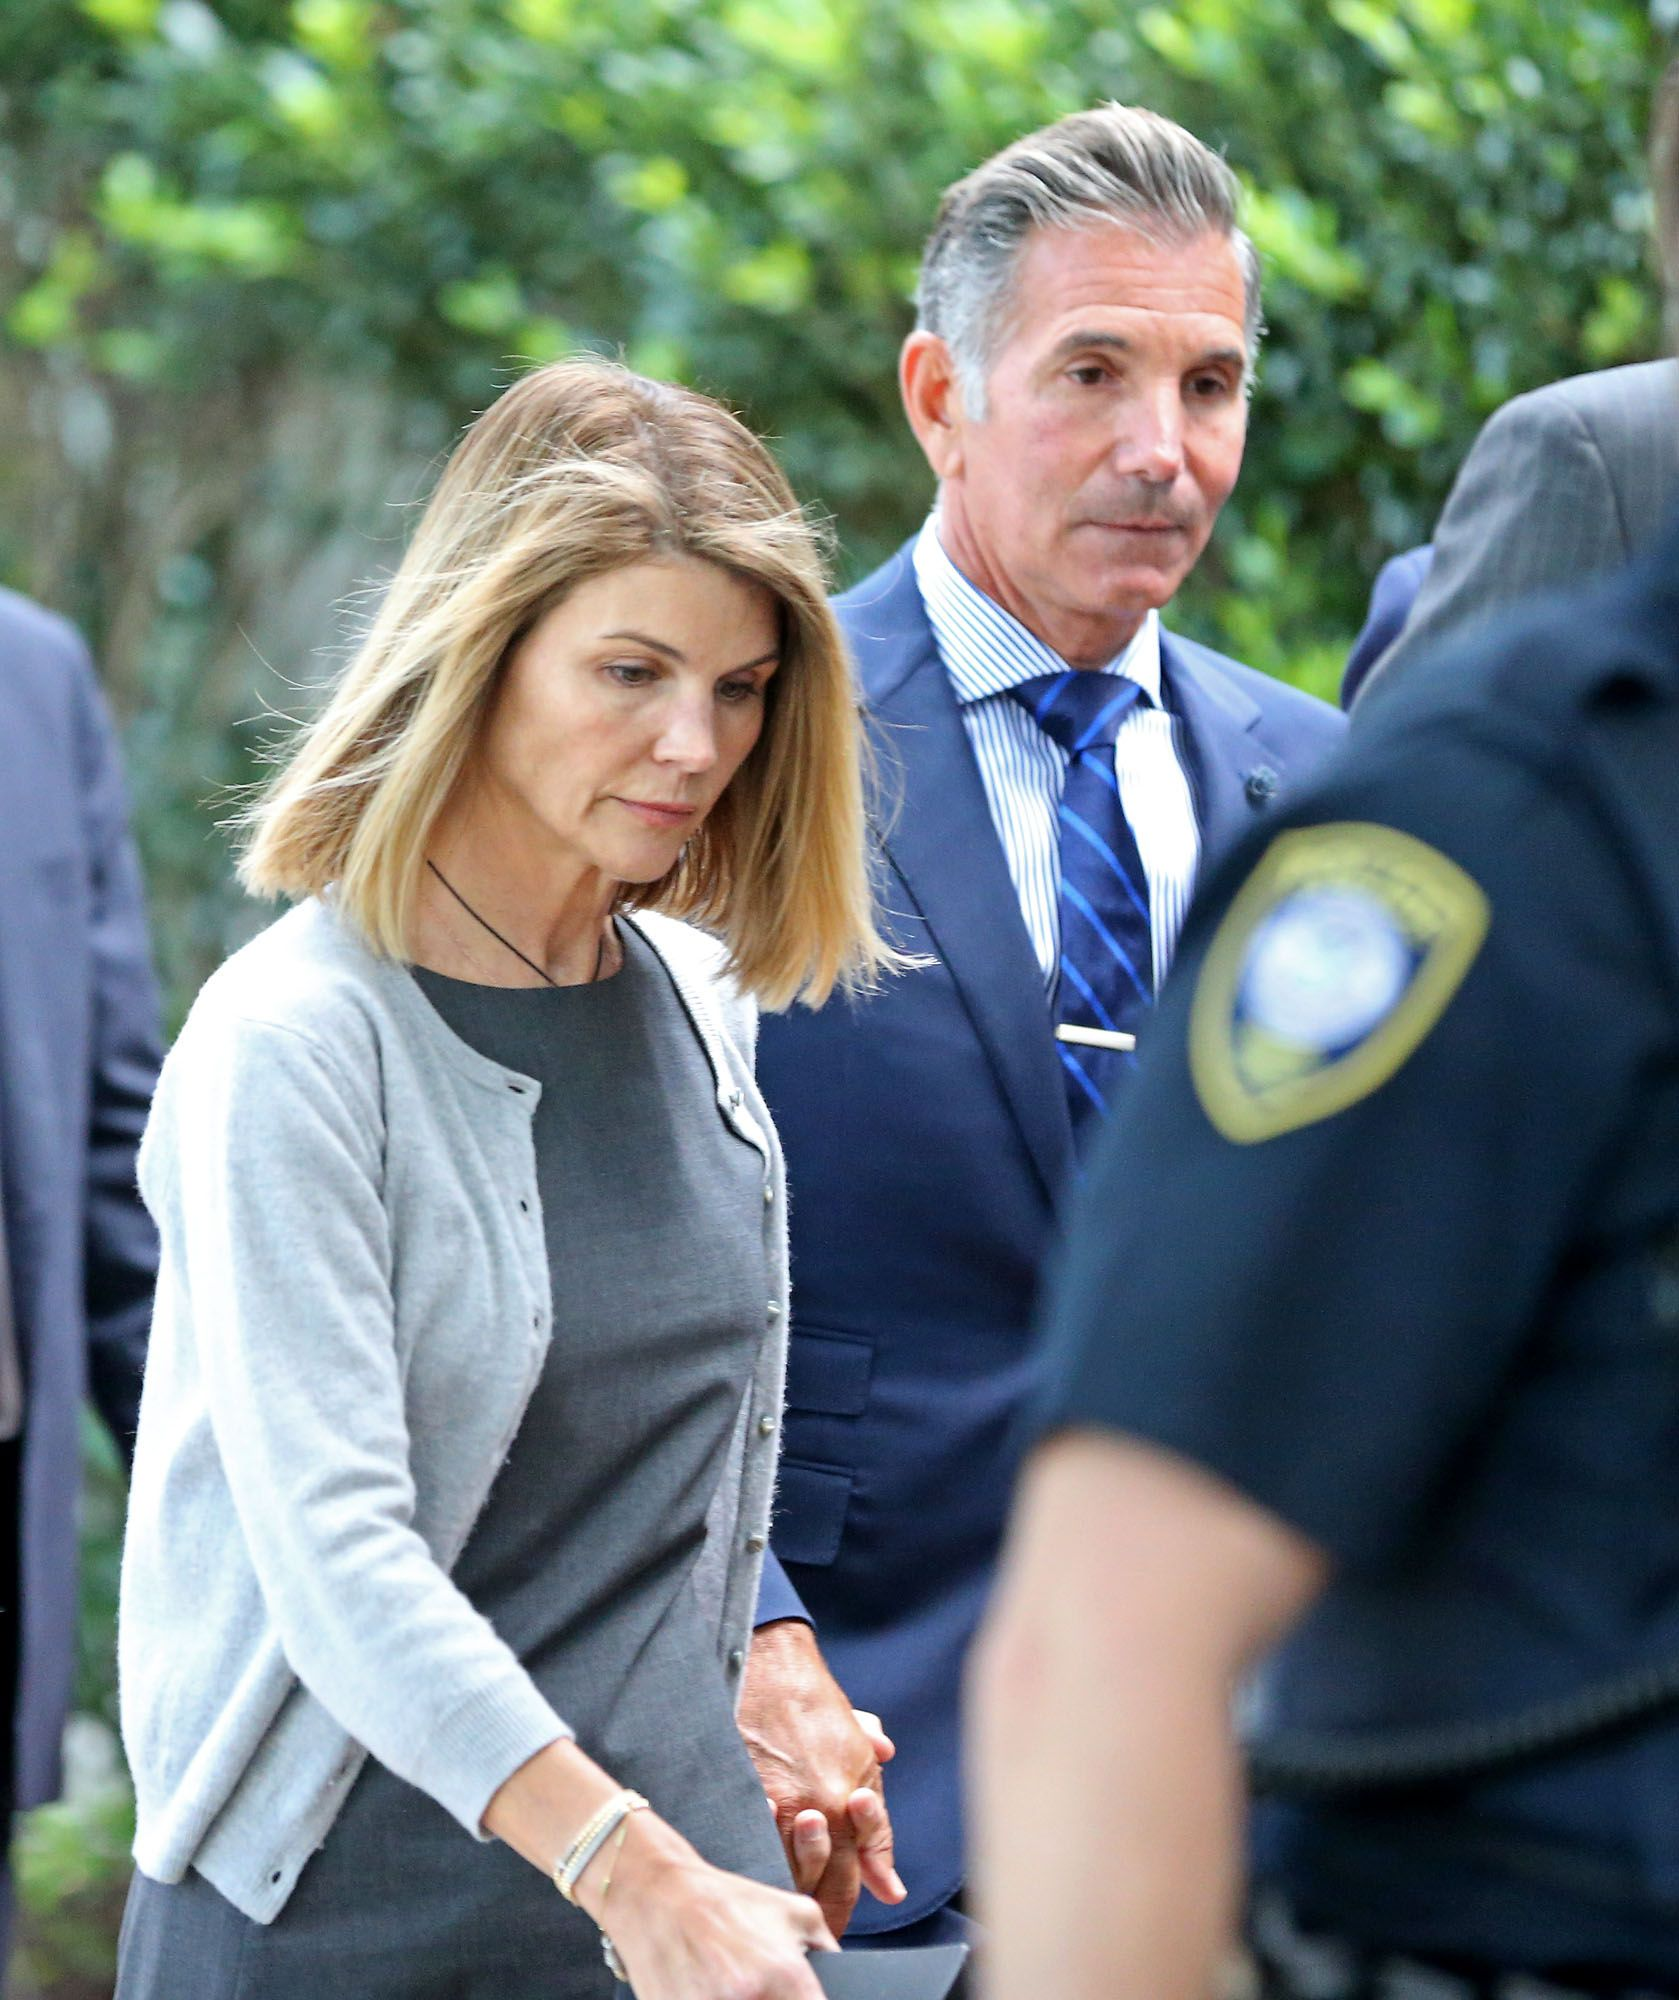 Lori Loughlin and Mossimo Giannulli leave Moakley Federal Courthousein Boston, Massachusetts   Photo: Stuart Cahill/MediaNews Group/Boston Herald via Getty Images